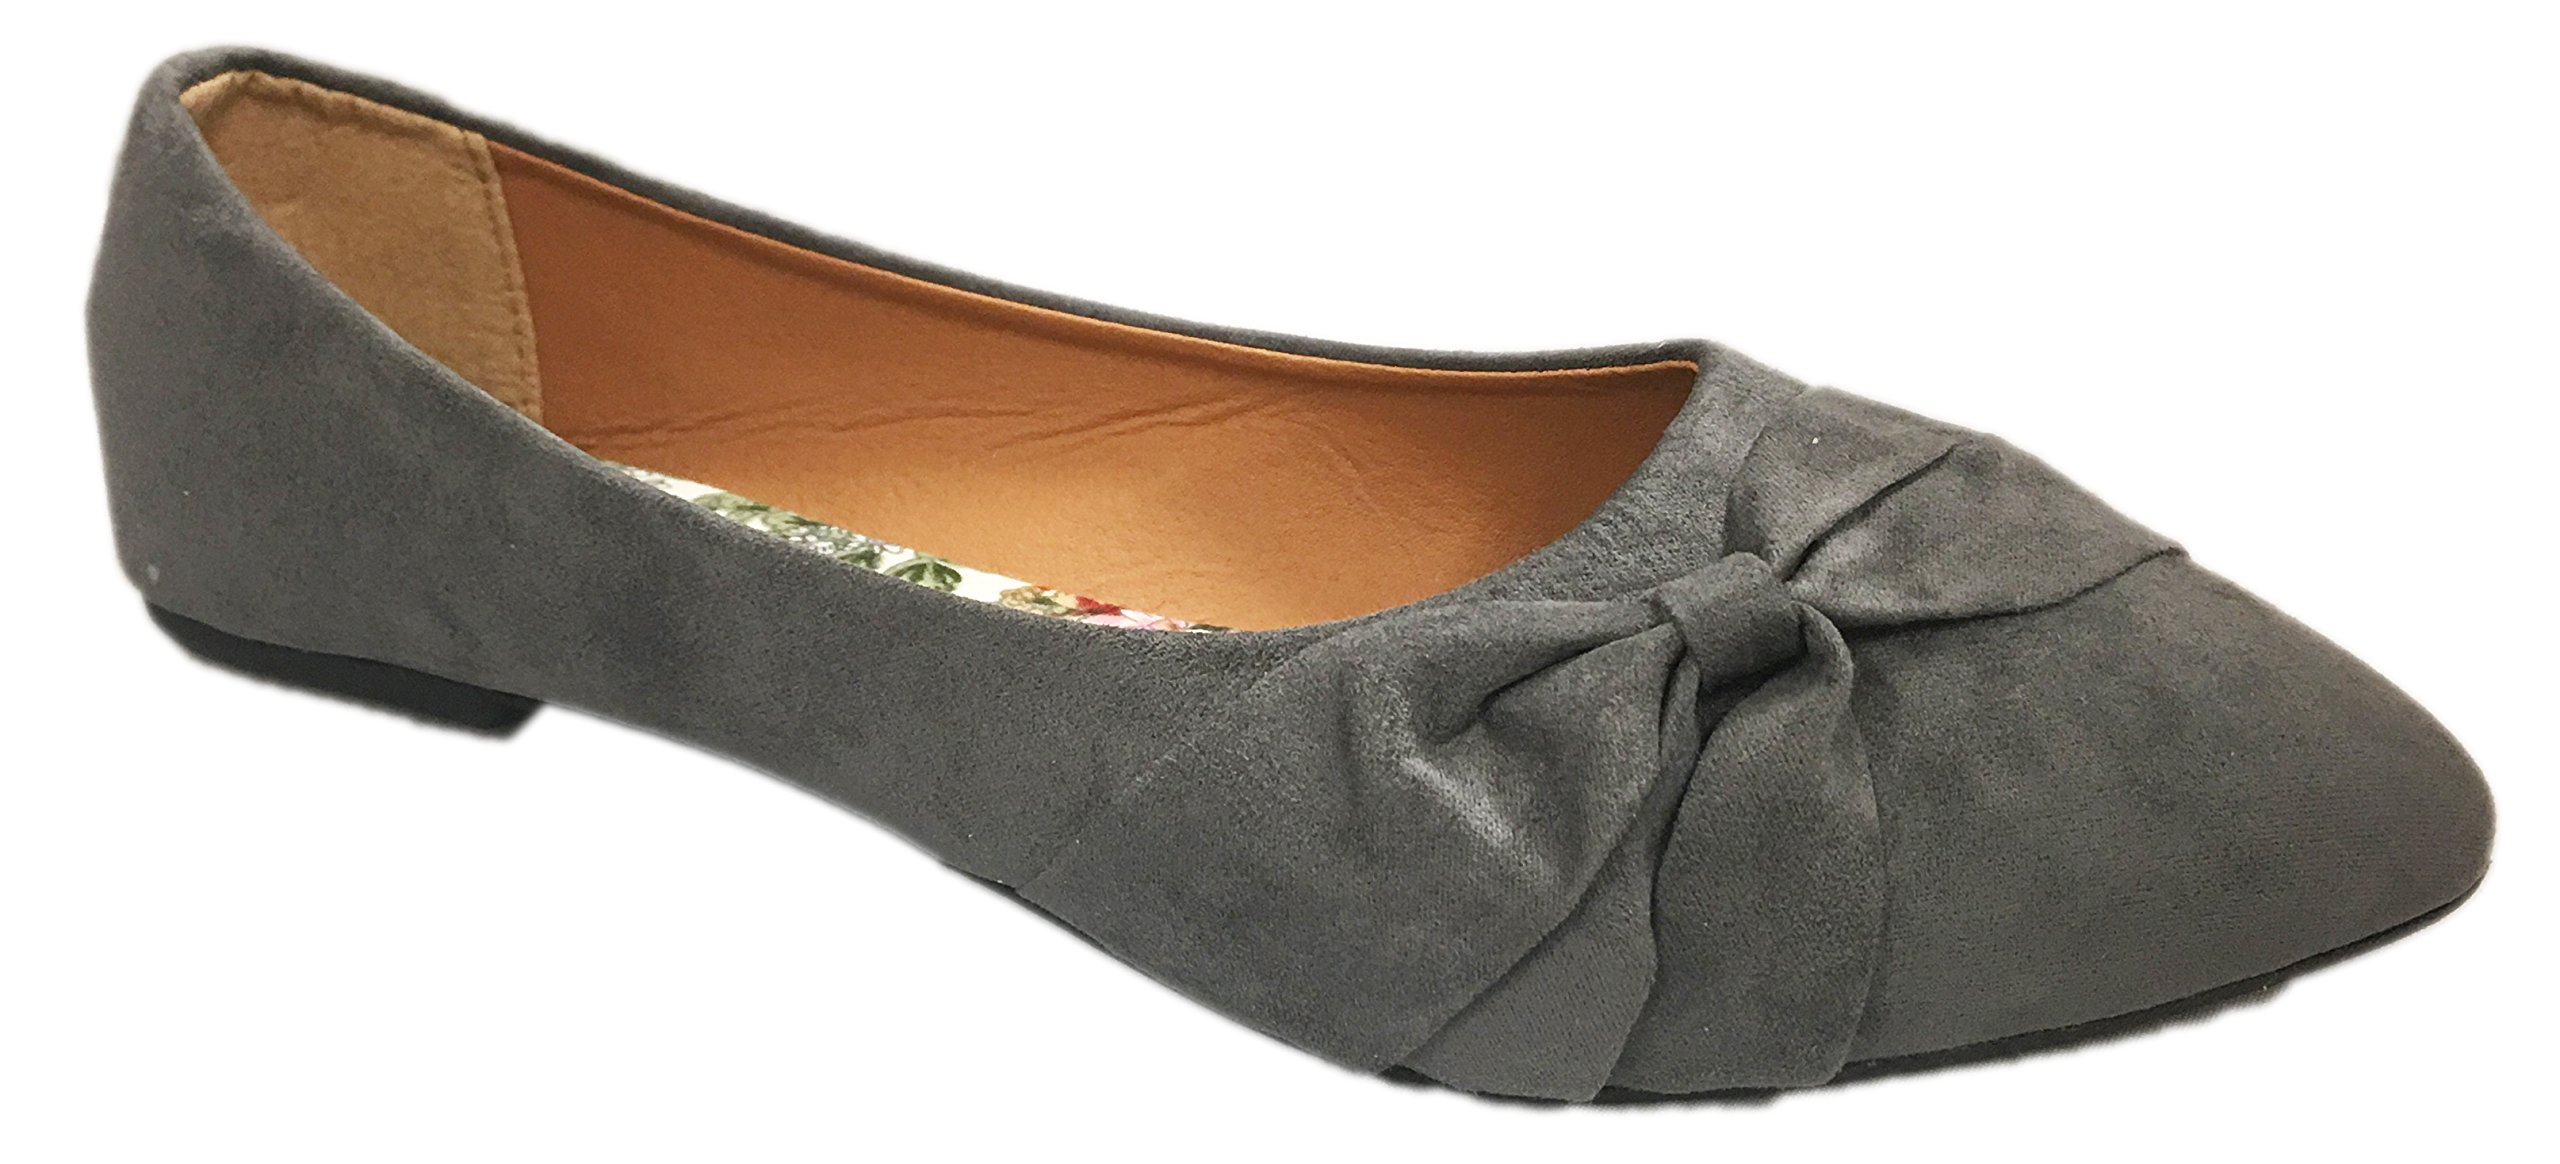 Womens Flats Jersey Soft and Faux Vegan Leather Comfortable Basic Canvas Slip On Ballet Shoes Dress Shoes (7, Grey Suede Vegan) by Shop Pretty Girl (Image #1)